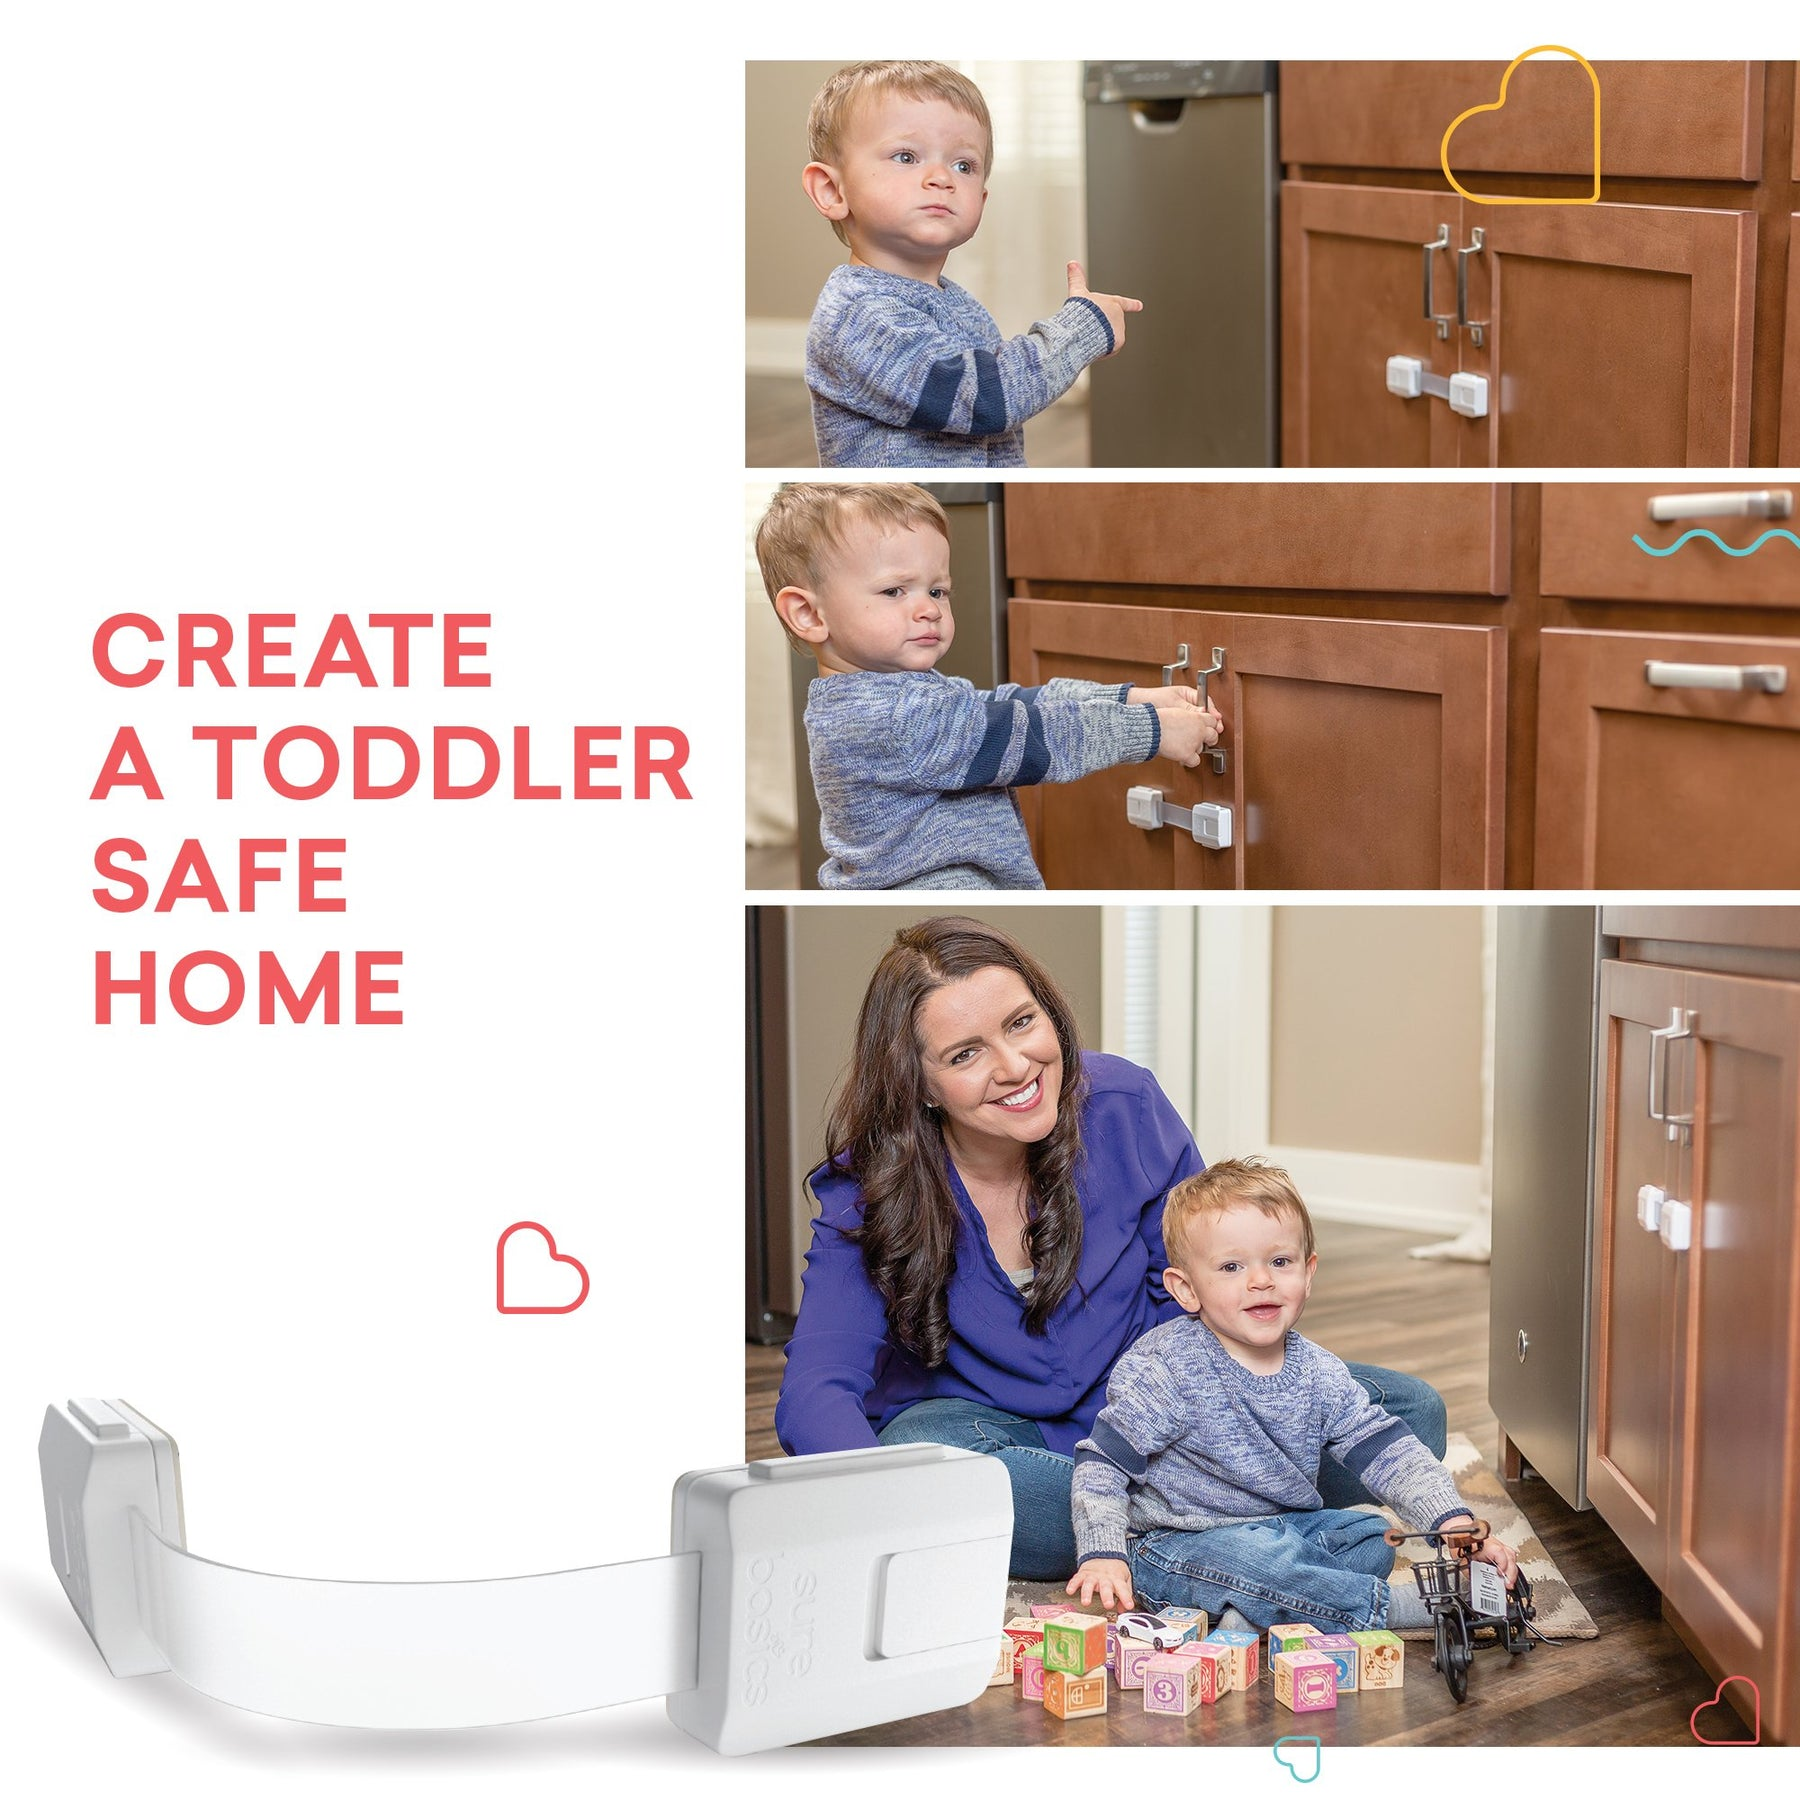 Child Safety Cabinet Lock Latches For Baby Proofing Drawers Fridge Refrigerators More White 6 Pack Sure Basics